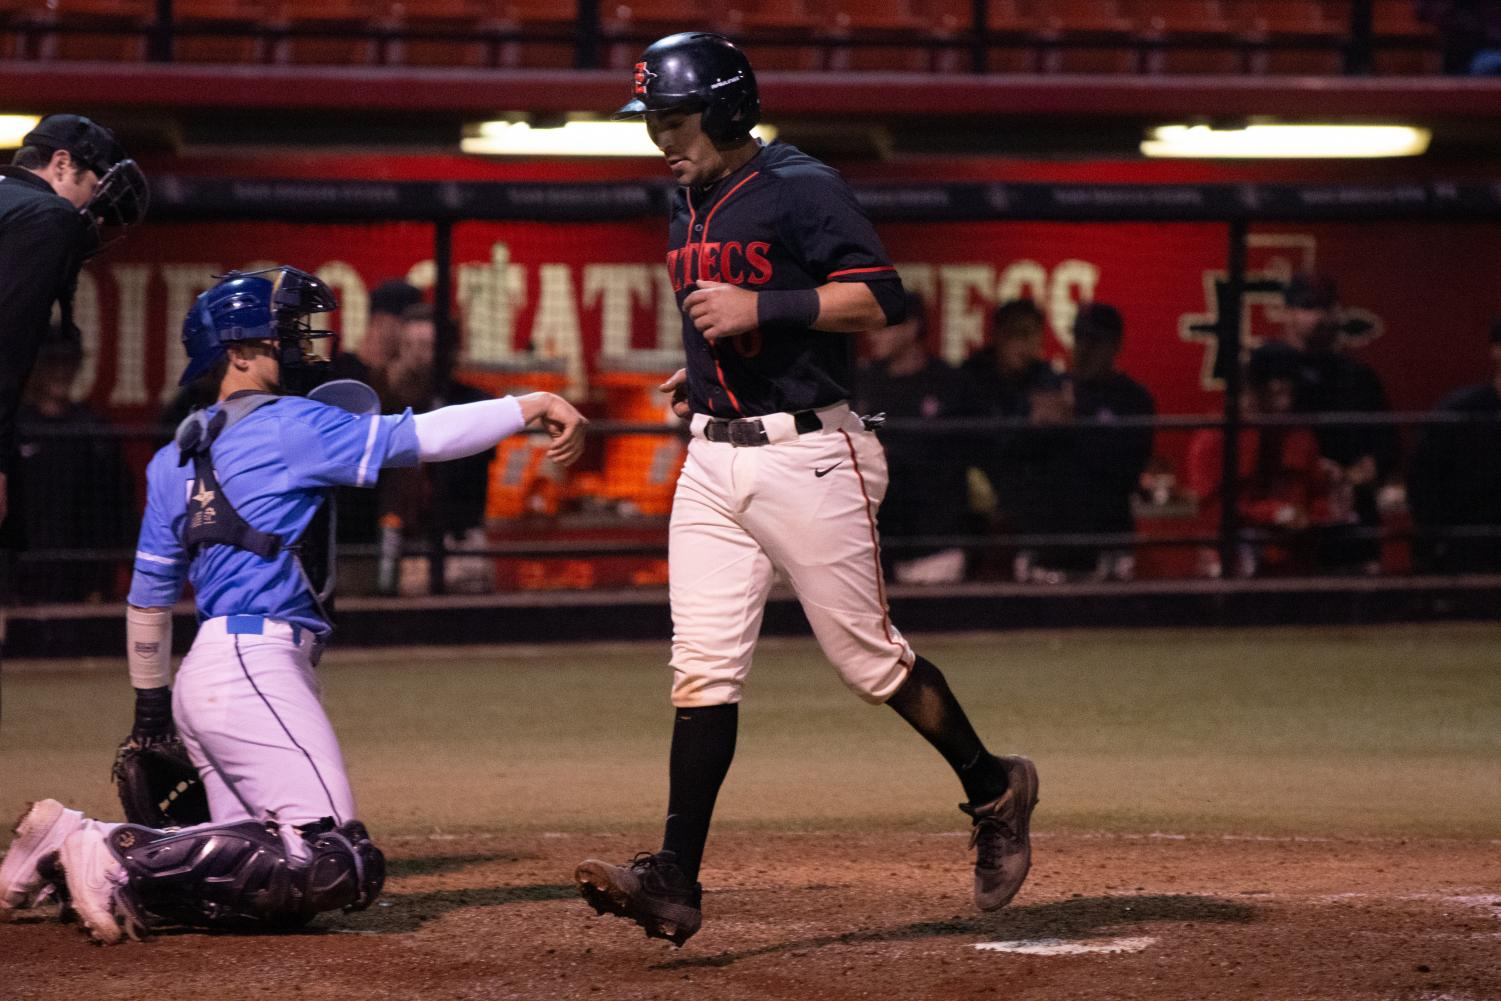 Senior infielder Angelo Armenta steps on home plate to score a run during the Aztecs' 4-2 loss against San Diego on Feb. 23 at Tony Gwynn Stadium.